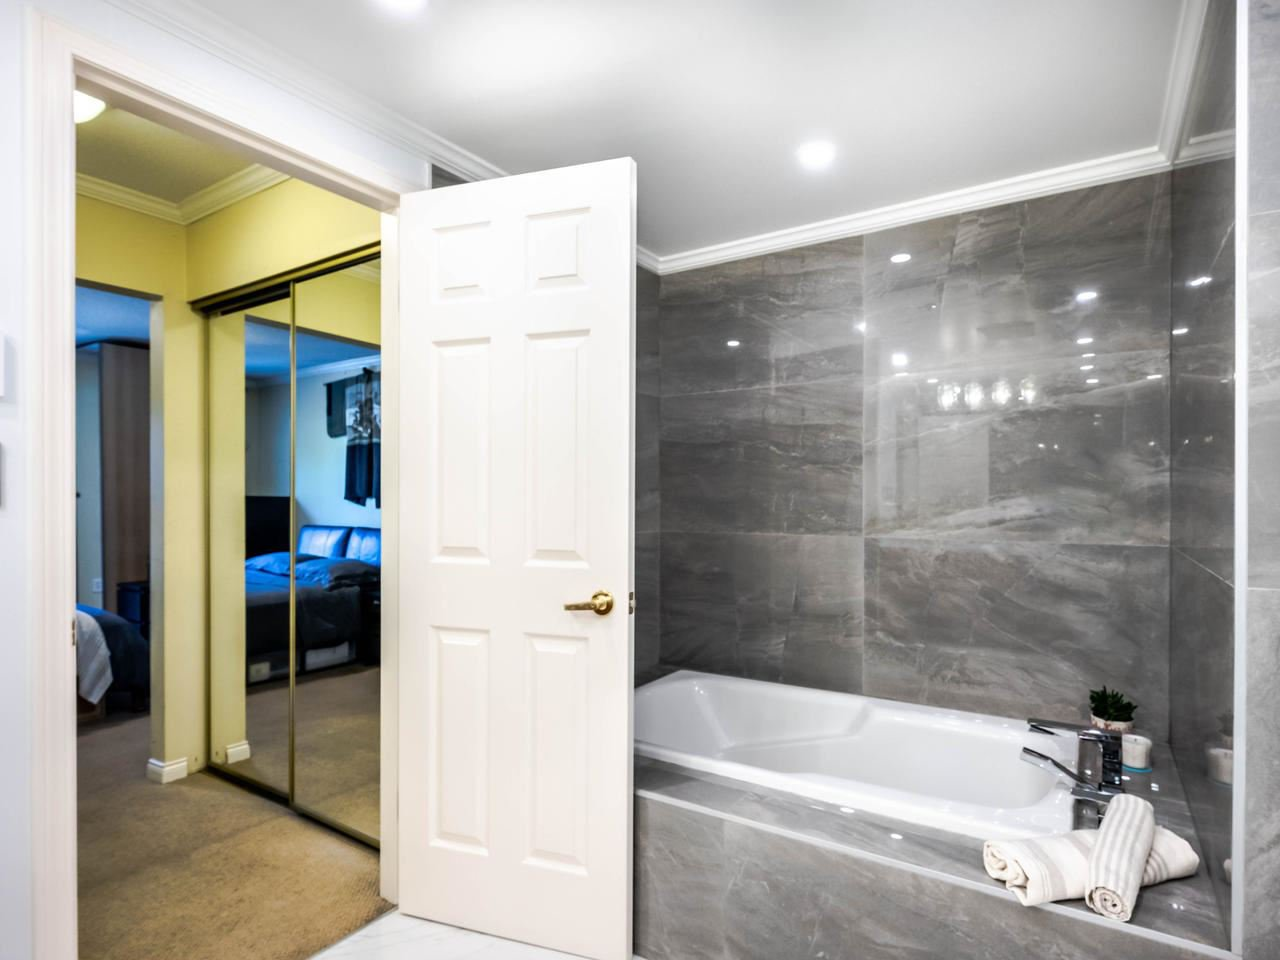 """Photo 27: Photos: 303 2288 W 12TH Avenue in Vancouver: Kitsilano Condo for sale in """"Connaught Point"""" (Vancouver West)  : MLS®# R2494985"""